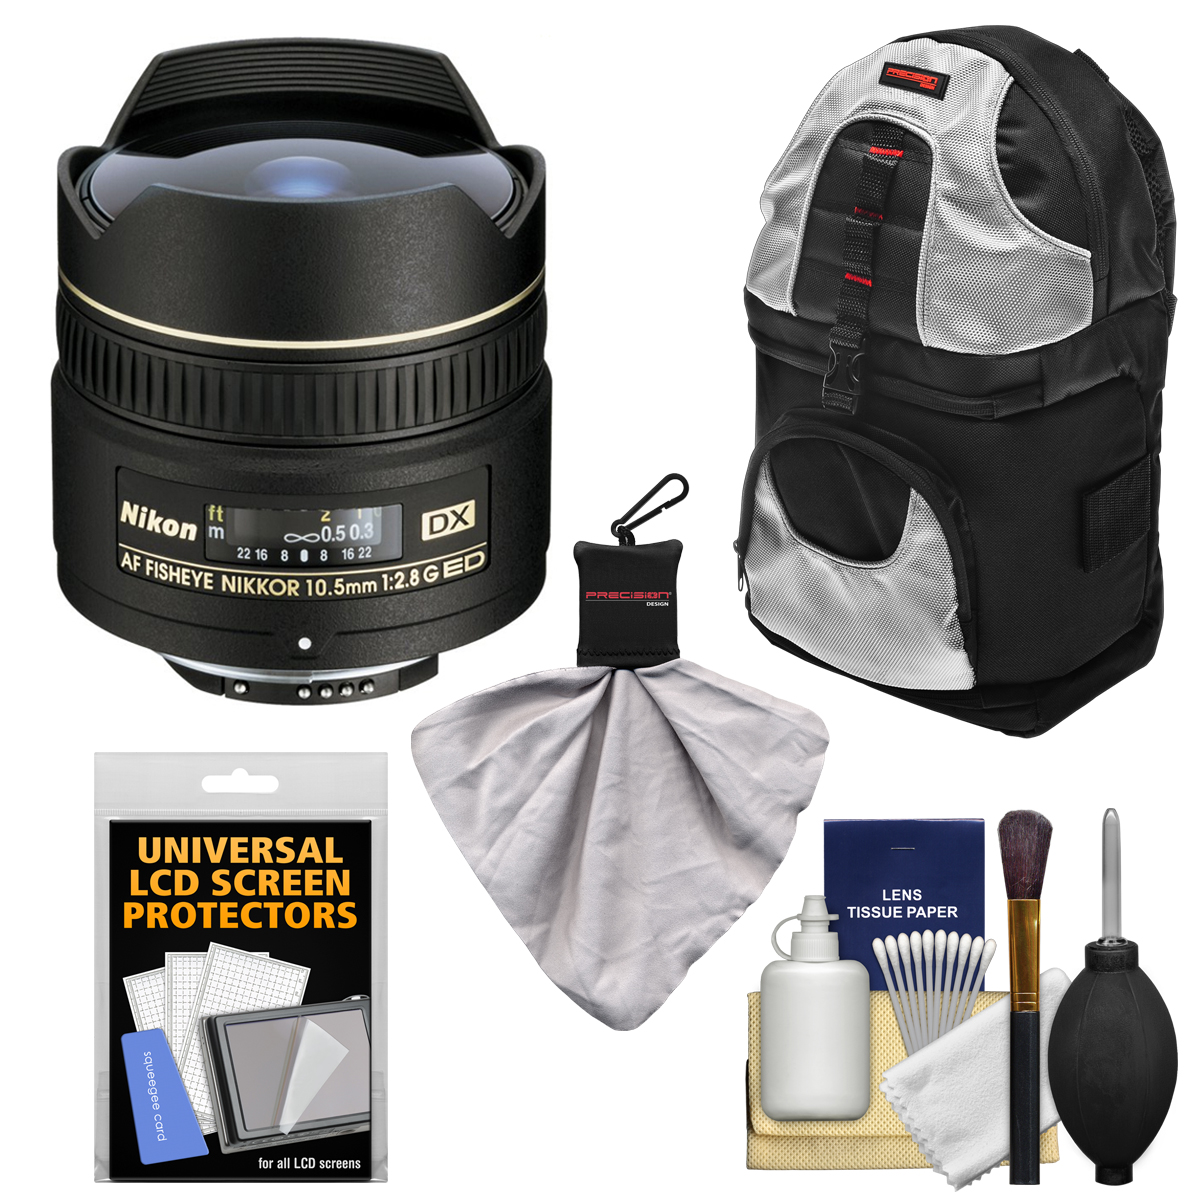 Nikon 10.5mm f/2.8G ED DX AF Fisheye-Nikkor Lens with Sling Backpack + Kit for D3100, D3200, D3300, D5100, D5200, D5300, D7000, D7100 DSLR Cameras